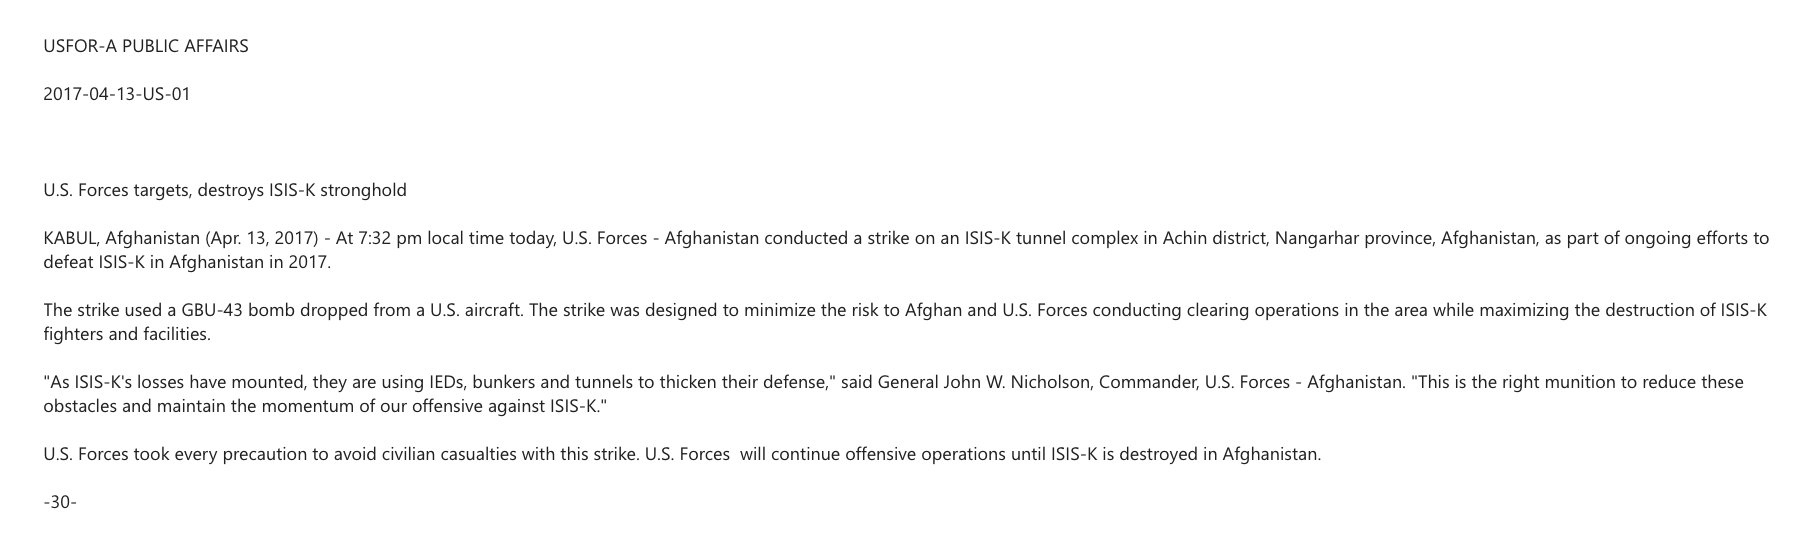 Military release on MOAB strike https://t.co/gvWwCKmUbH